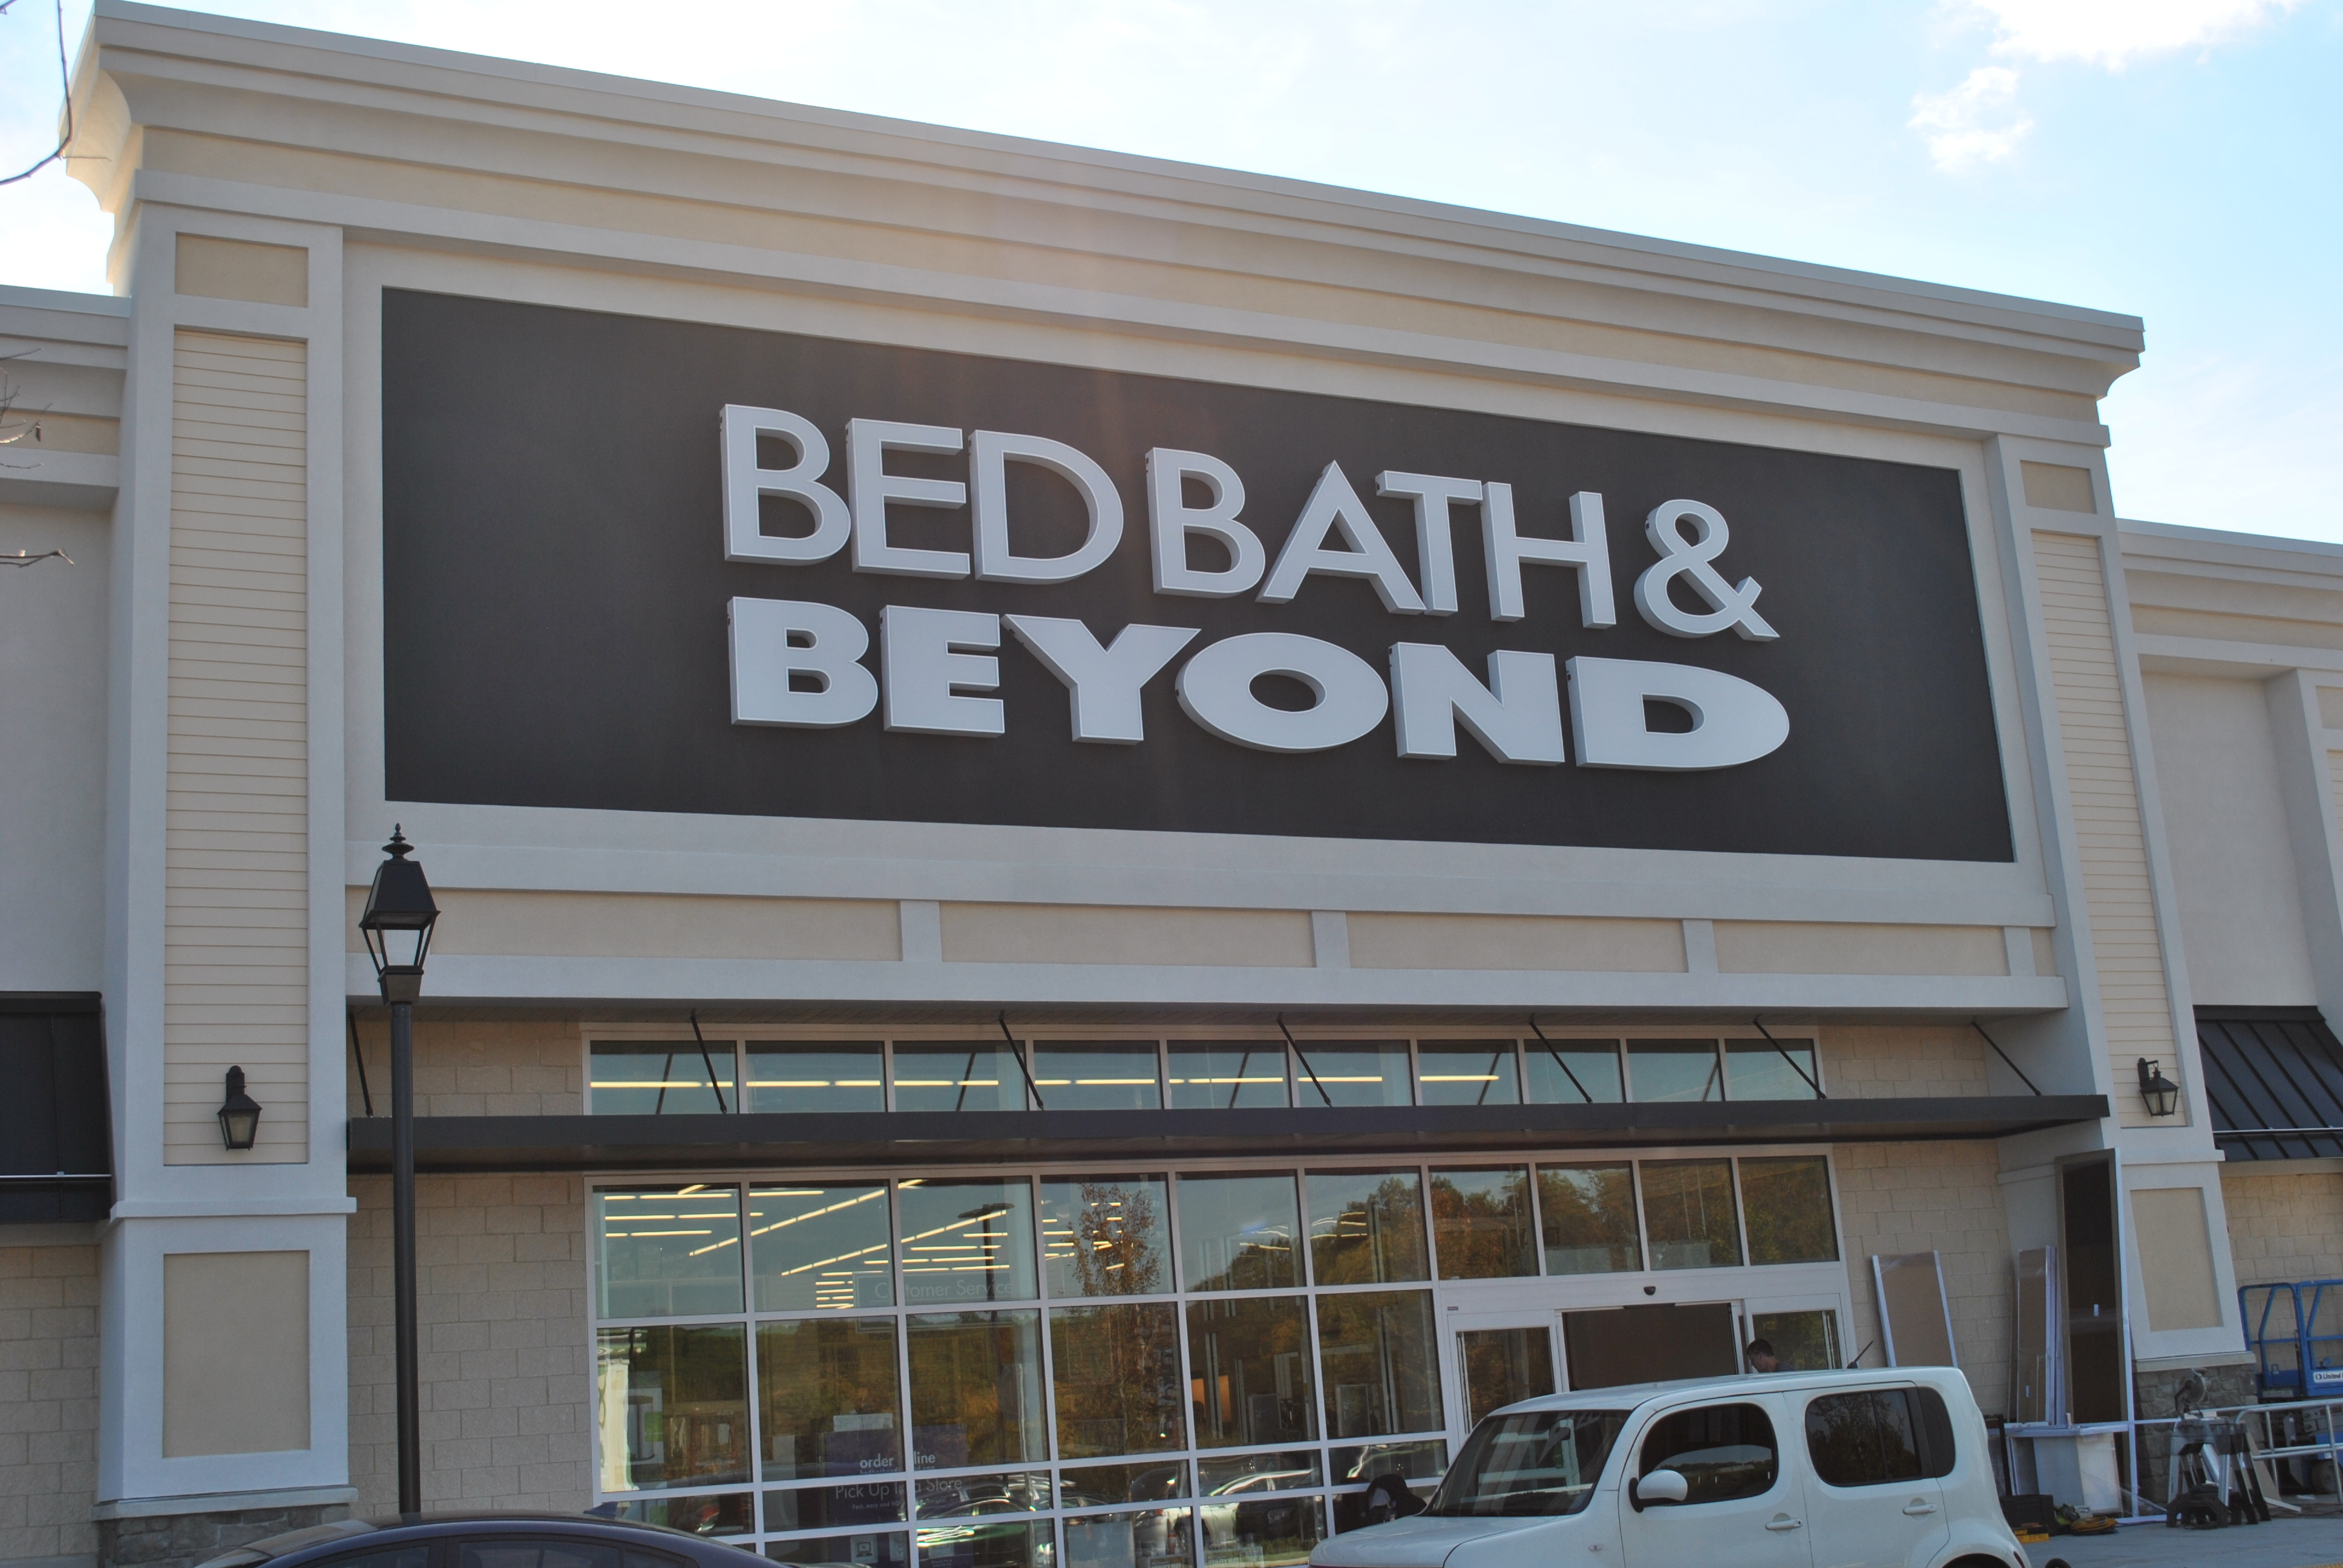 Watch exciting new videos in Bed Bath & Beyond TV and see the latest trends in Cooking, Home Decor, Seasonal Favorites and Wedding Gifts.